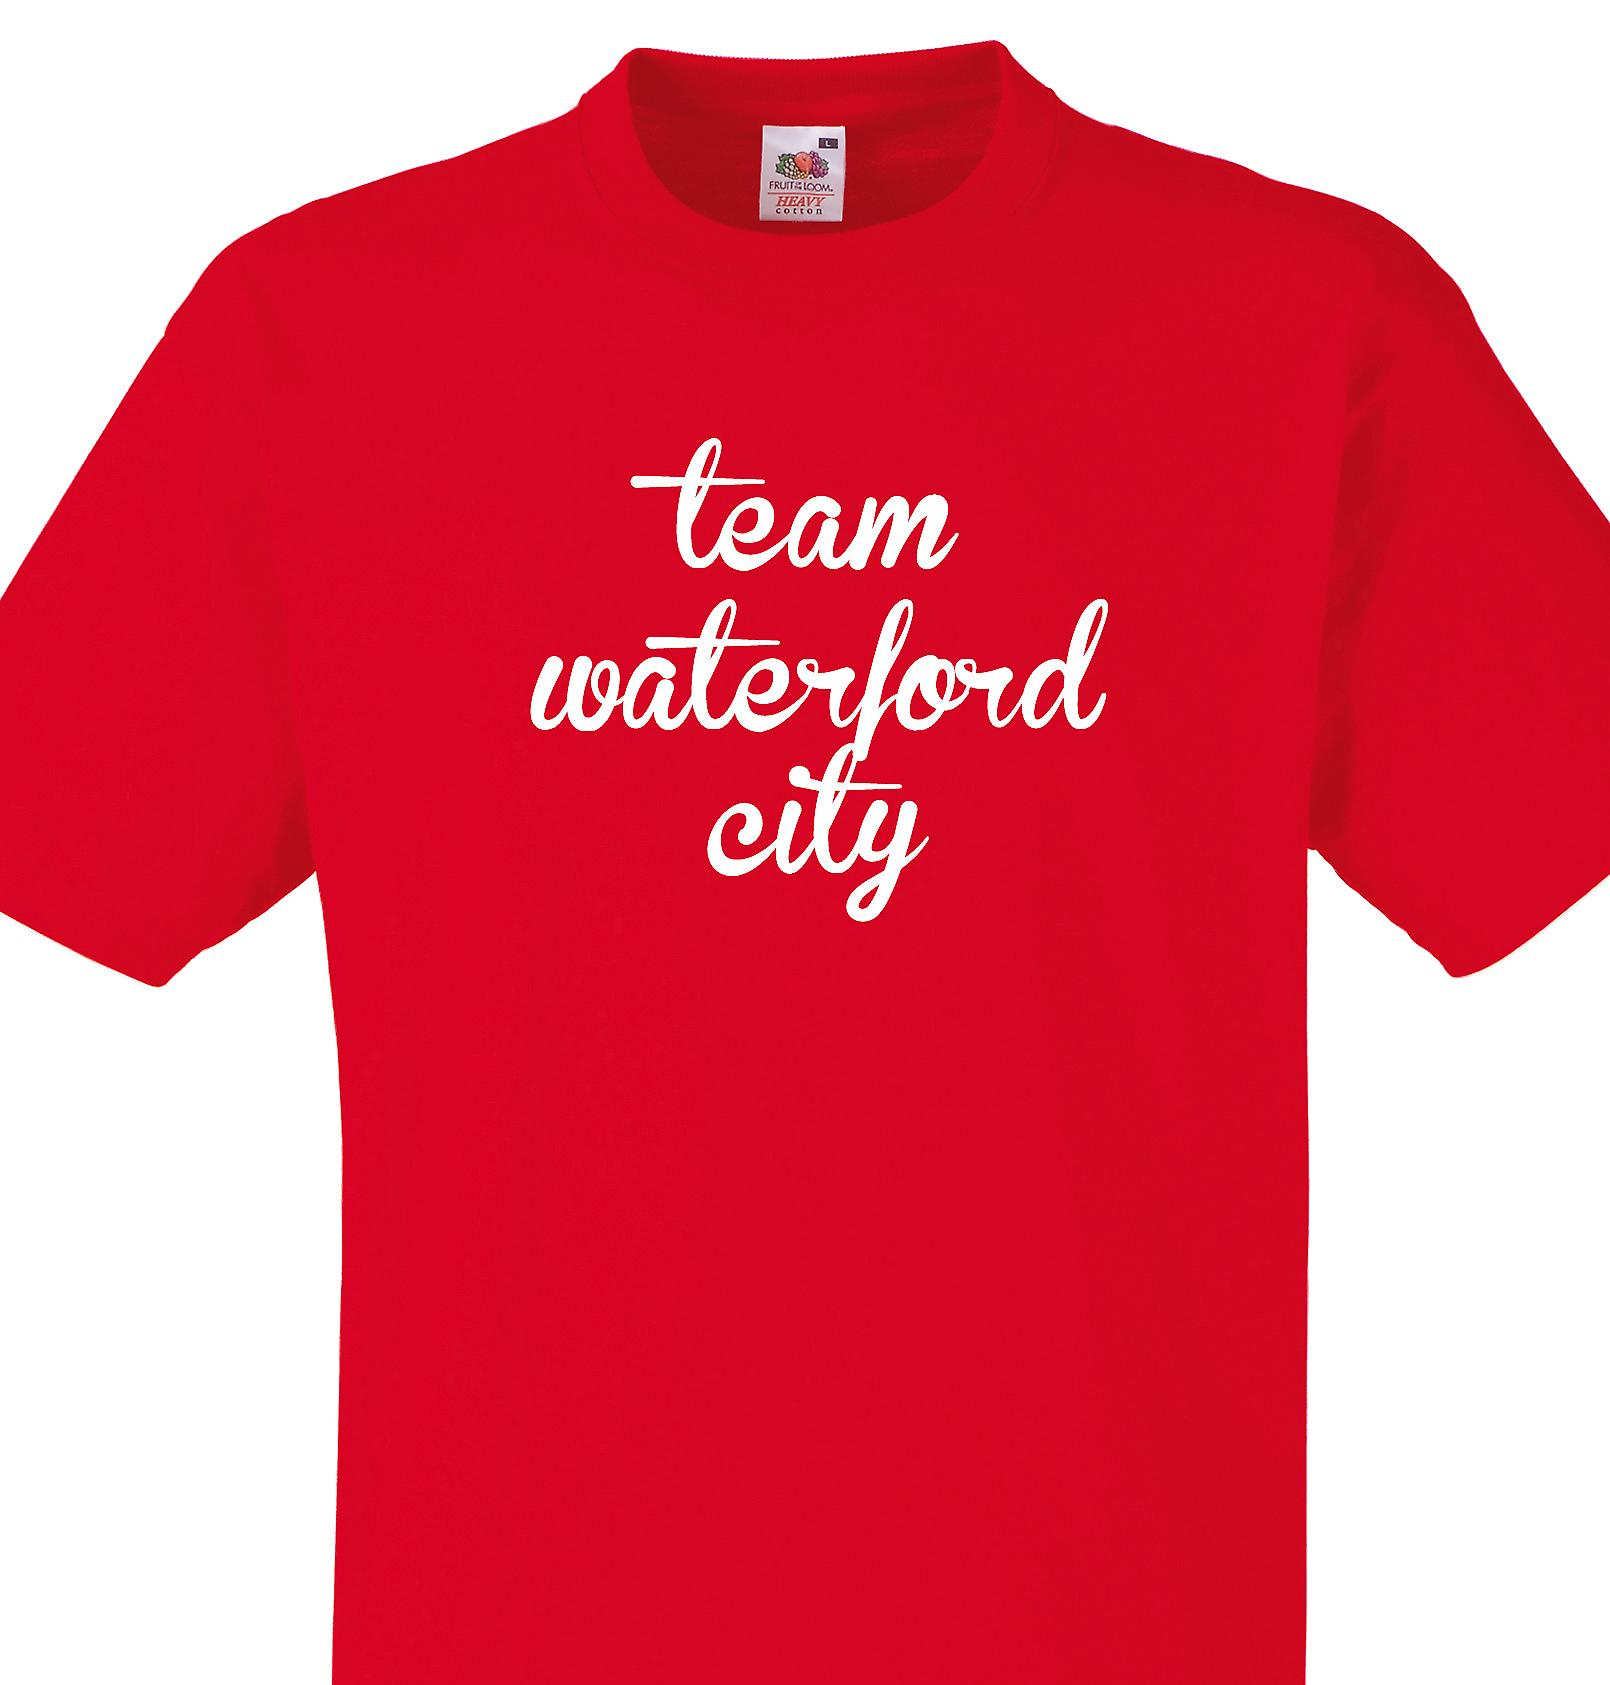 Team Waterford city Red T shirt